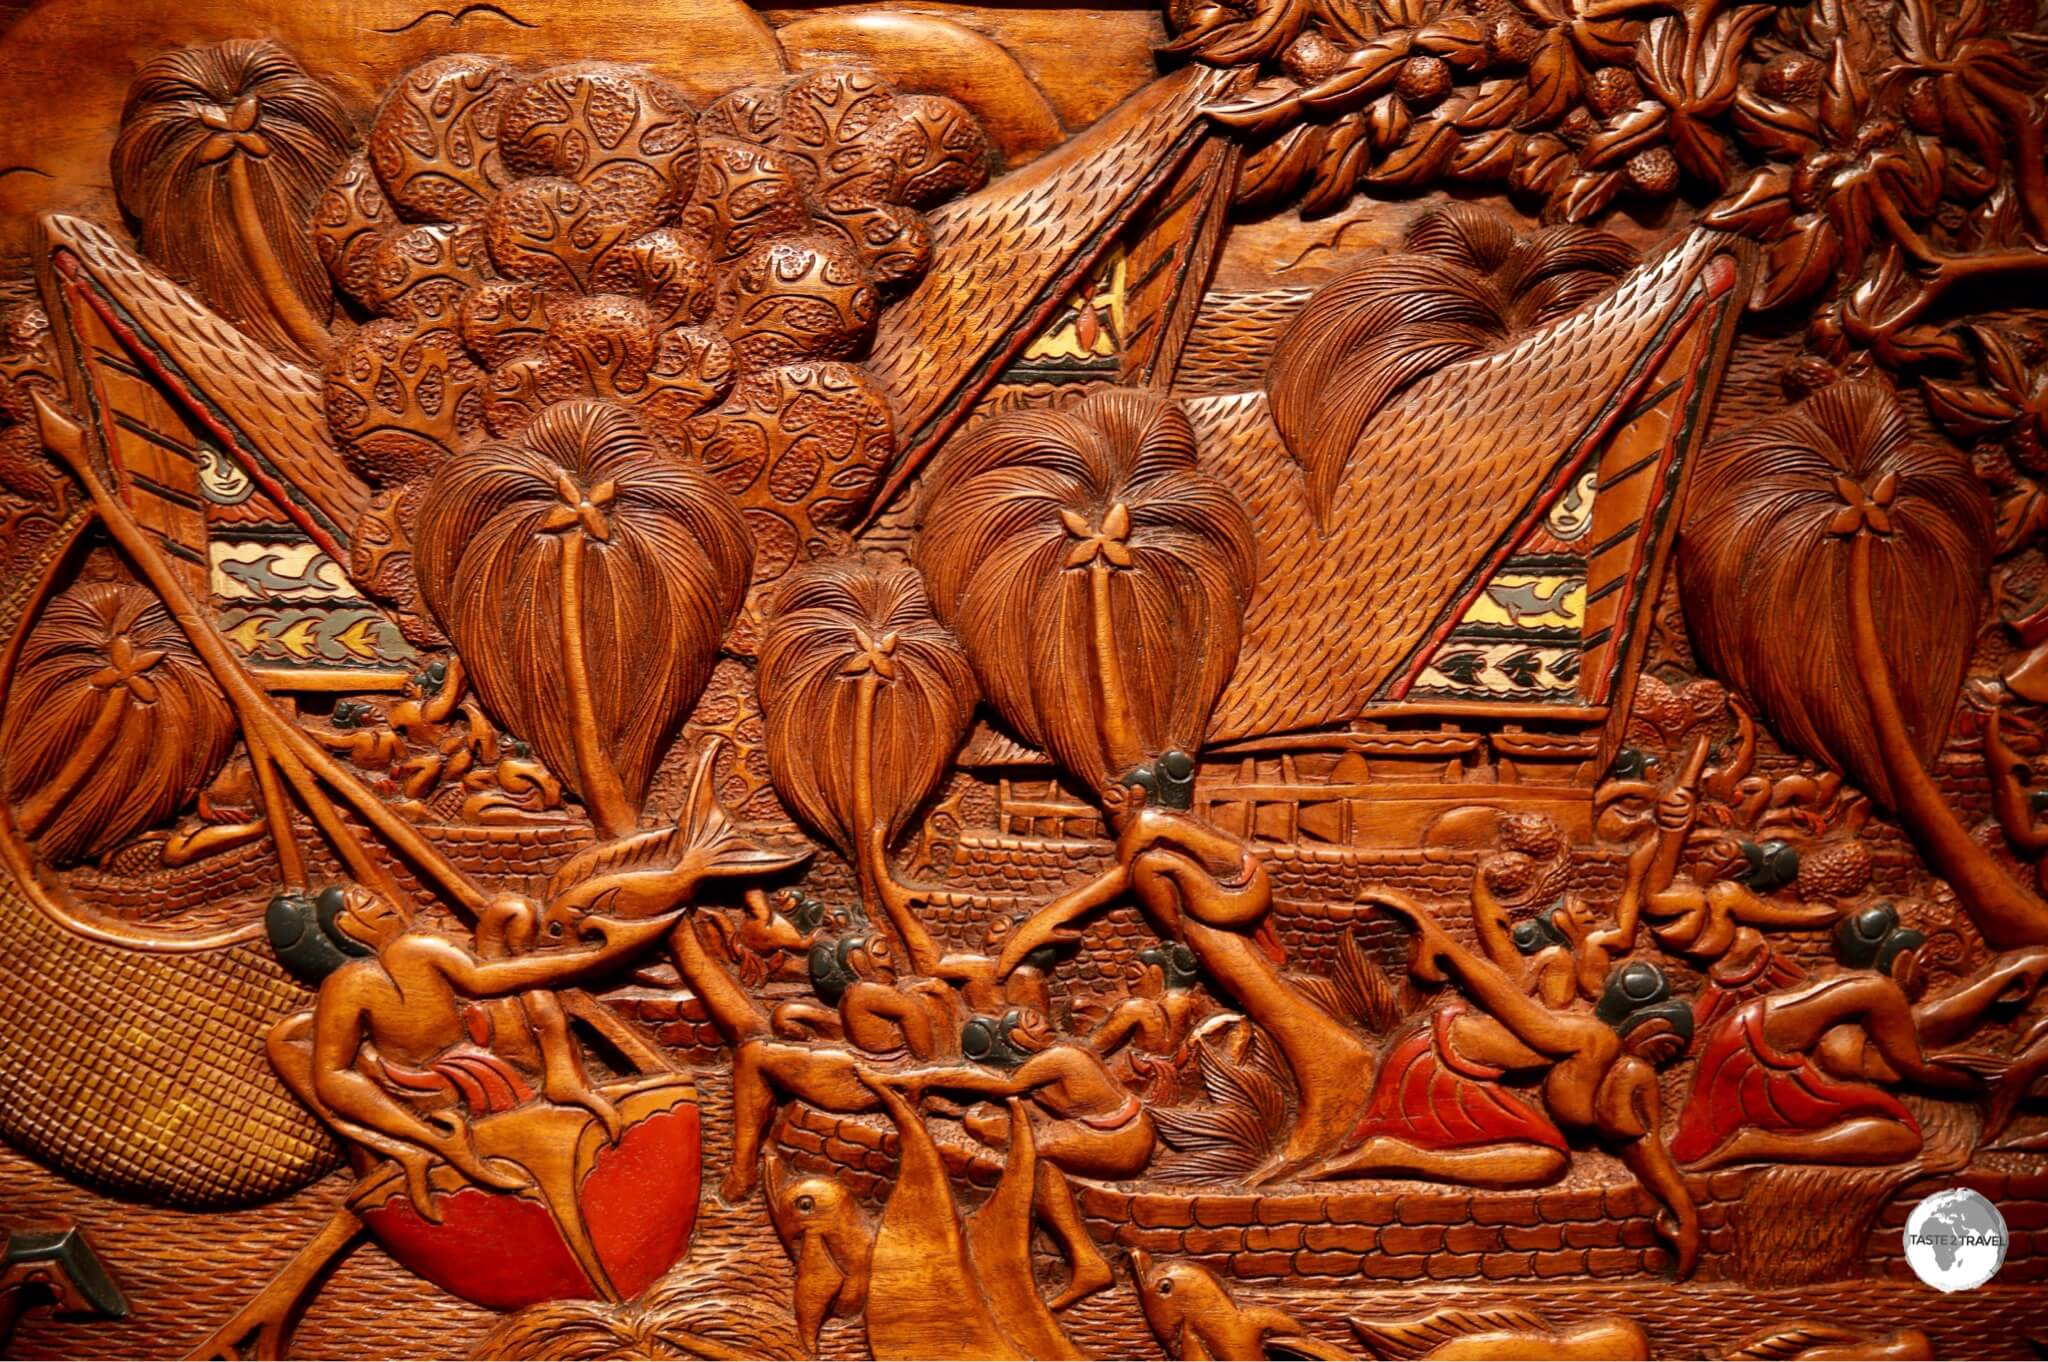 Traditional Palau 'storyboard' wood carving.